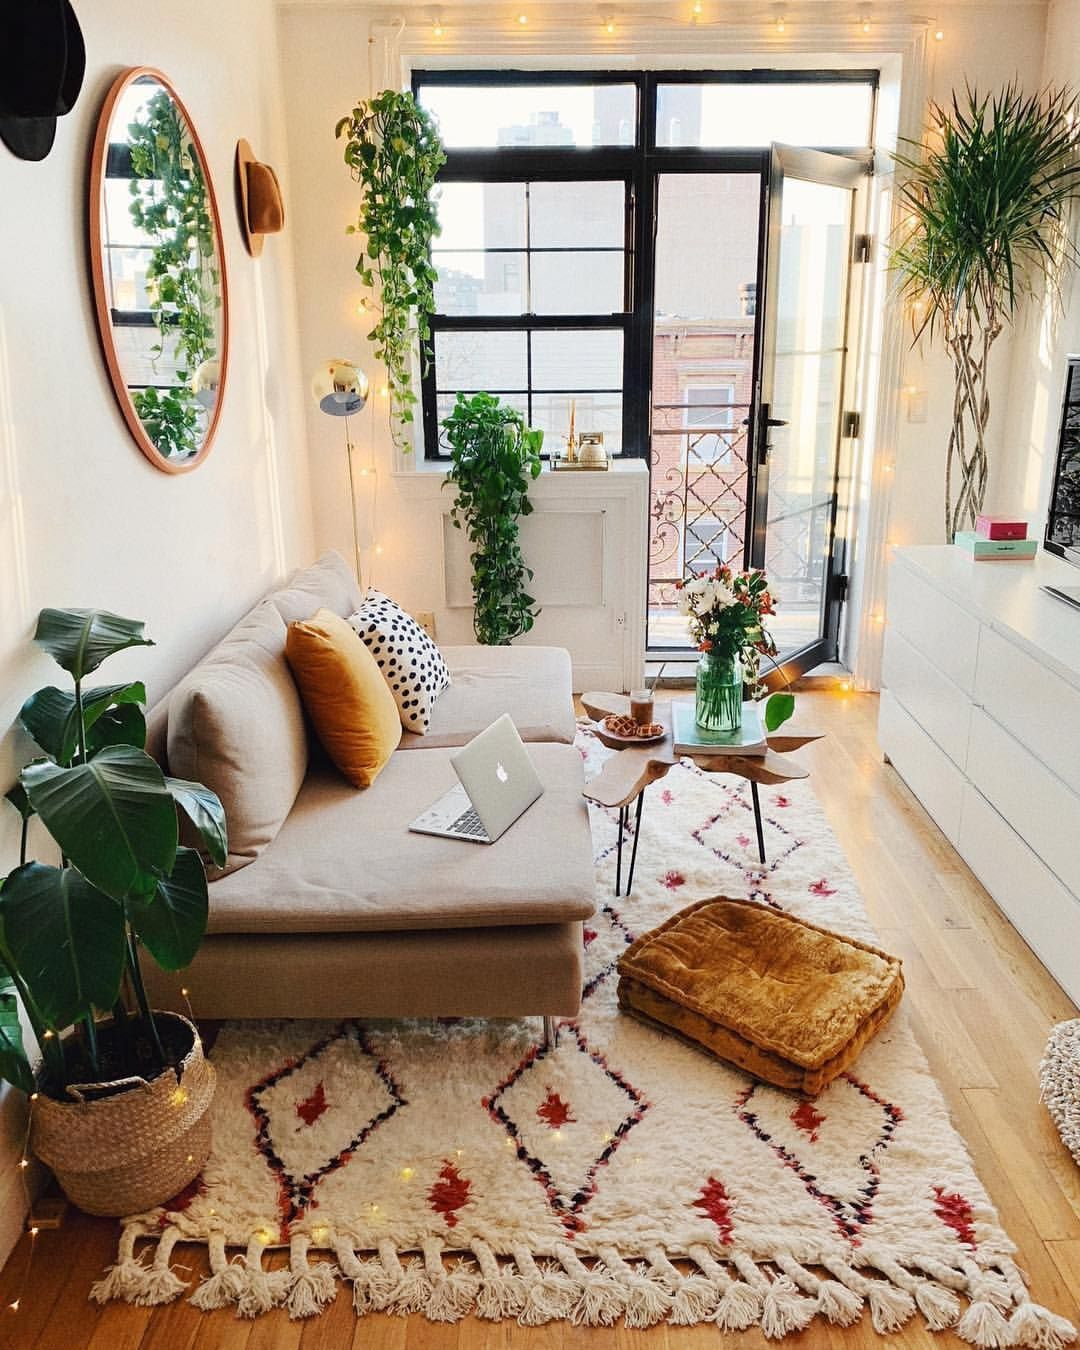 99 ideas for decorating your living room 2021 in 2020 on best living room colors 2021 id=91888